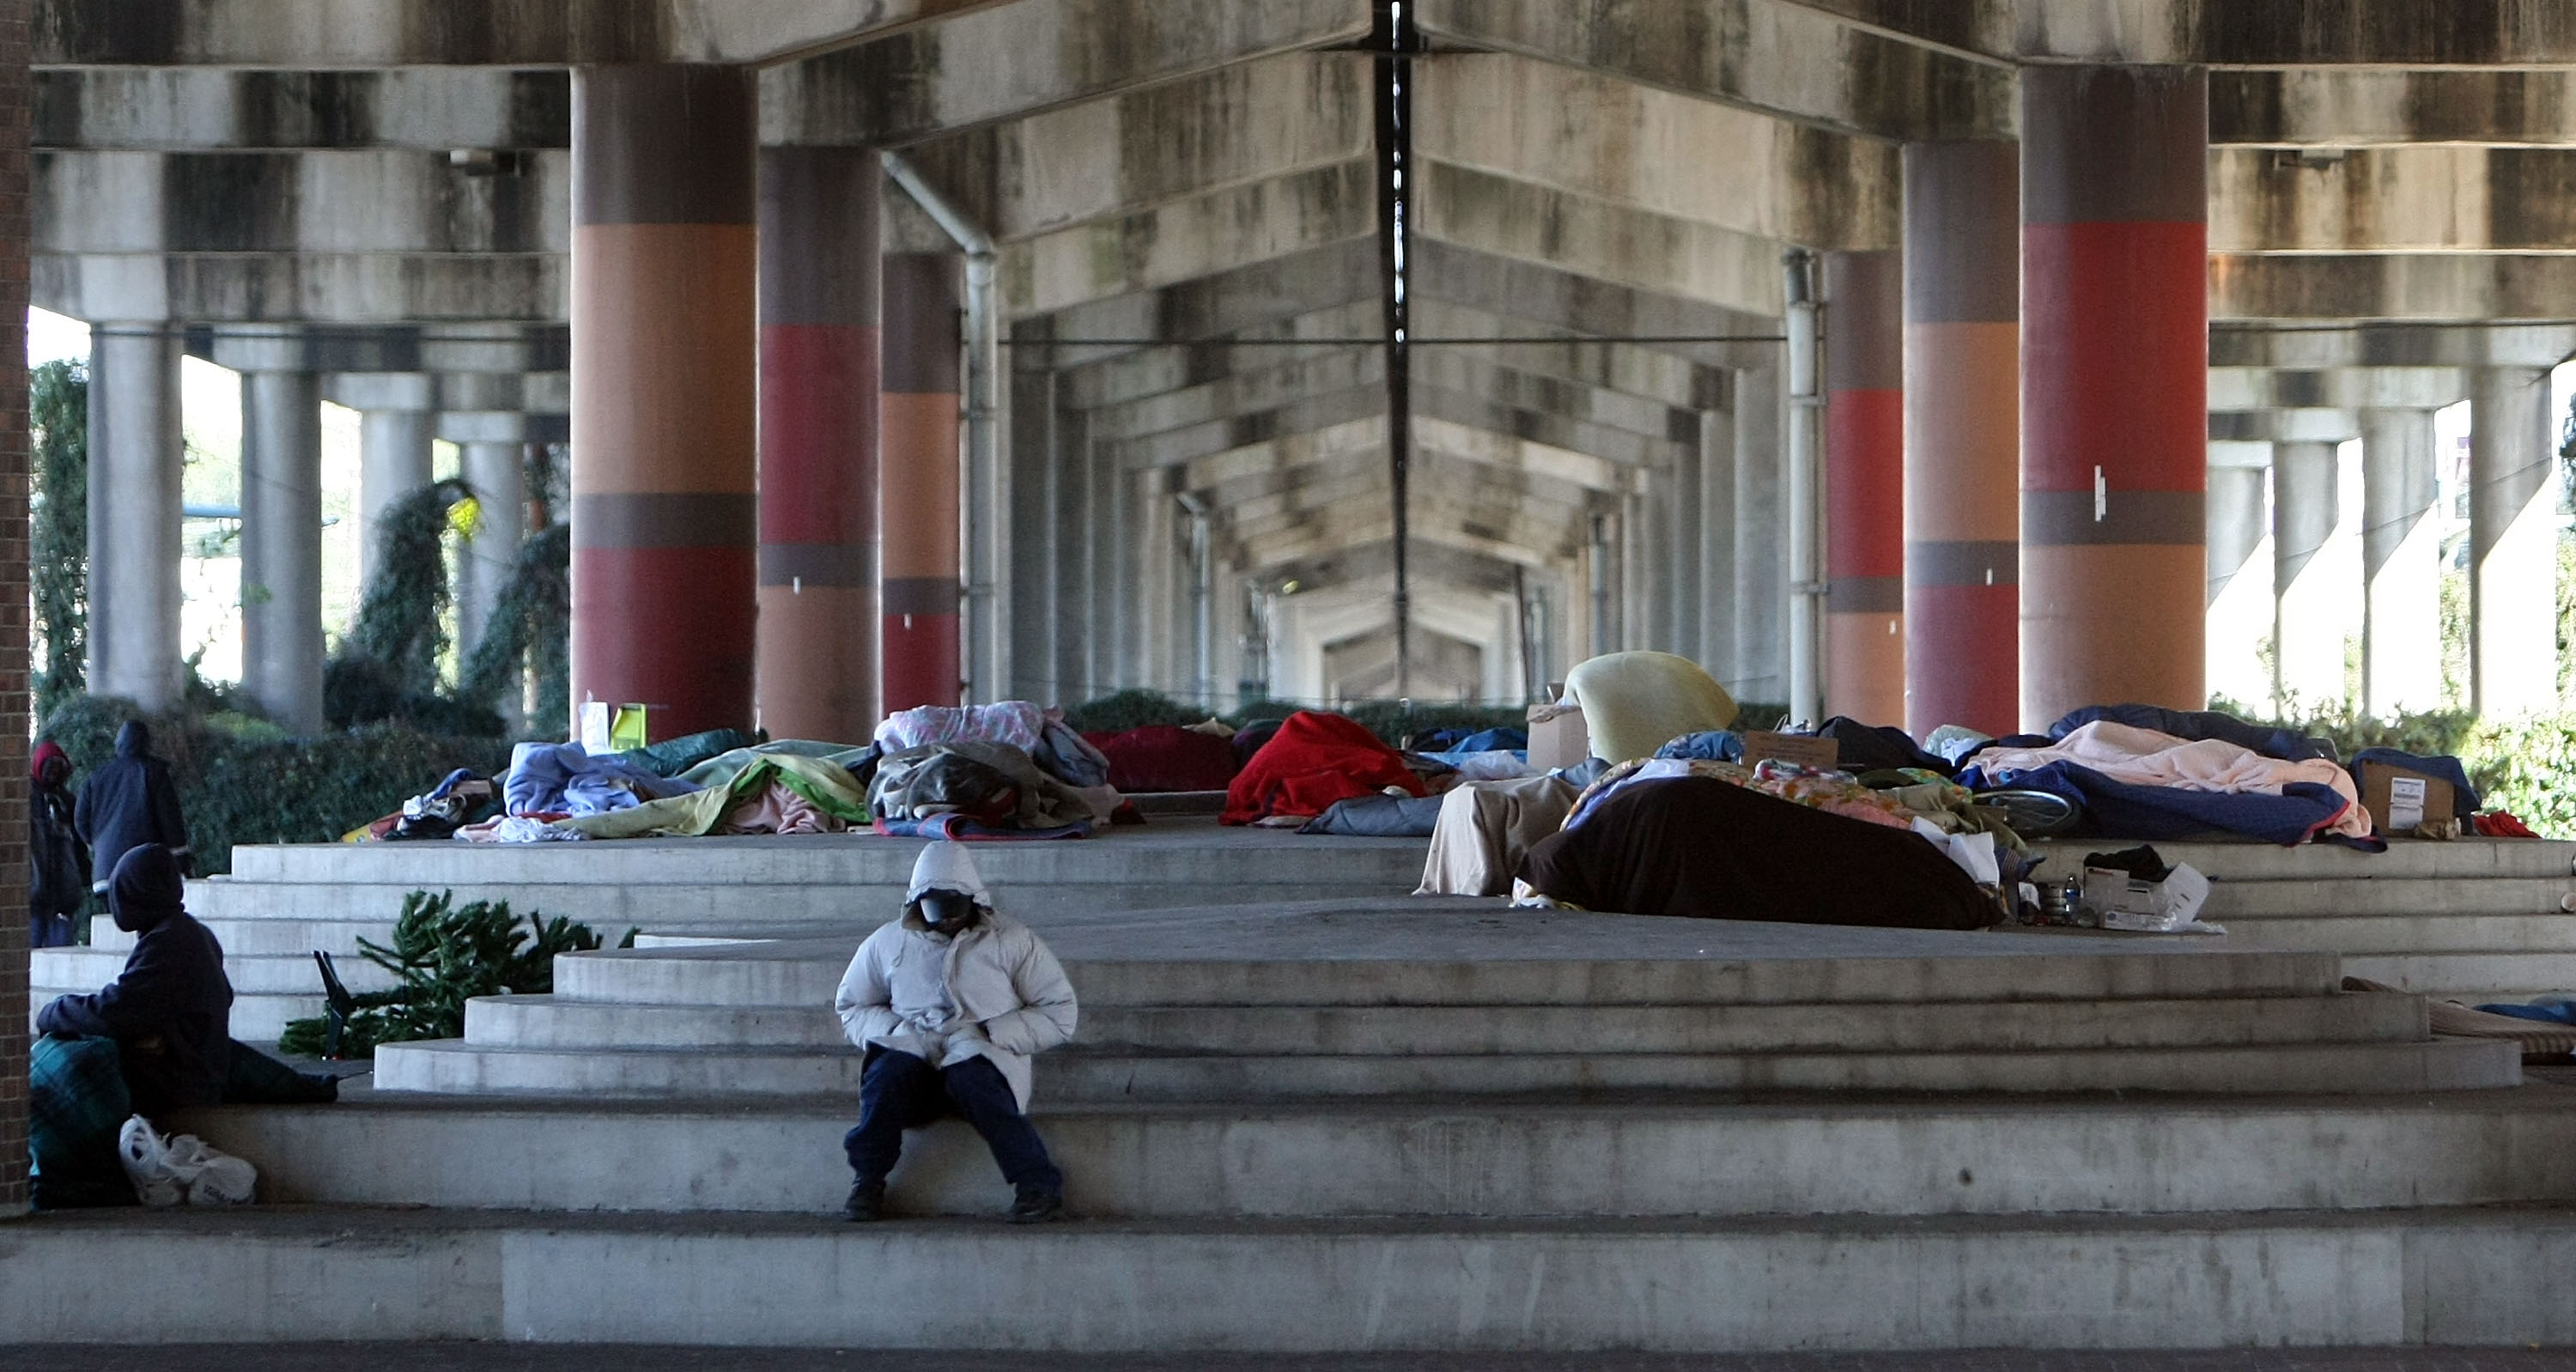 A man in a hooded coat sits on rounded steps under a freeway overpass filled with tents and sleeping bags.